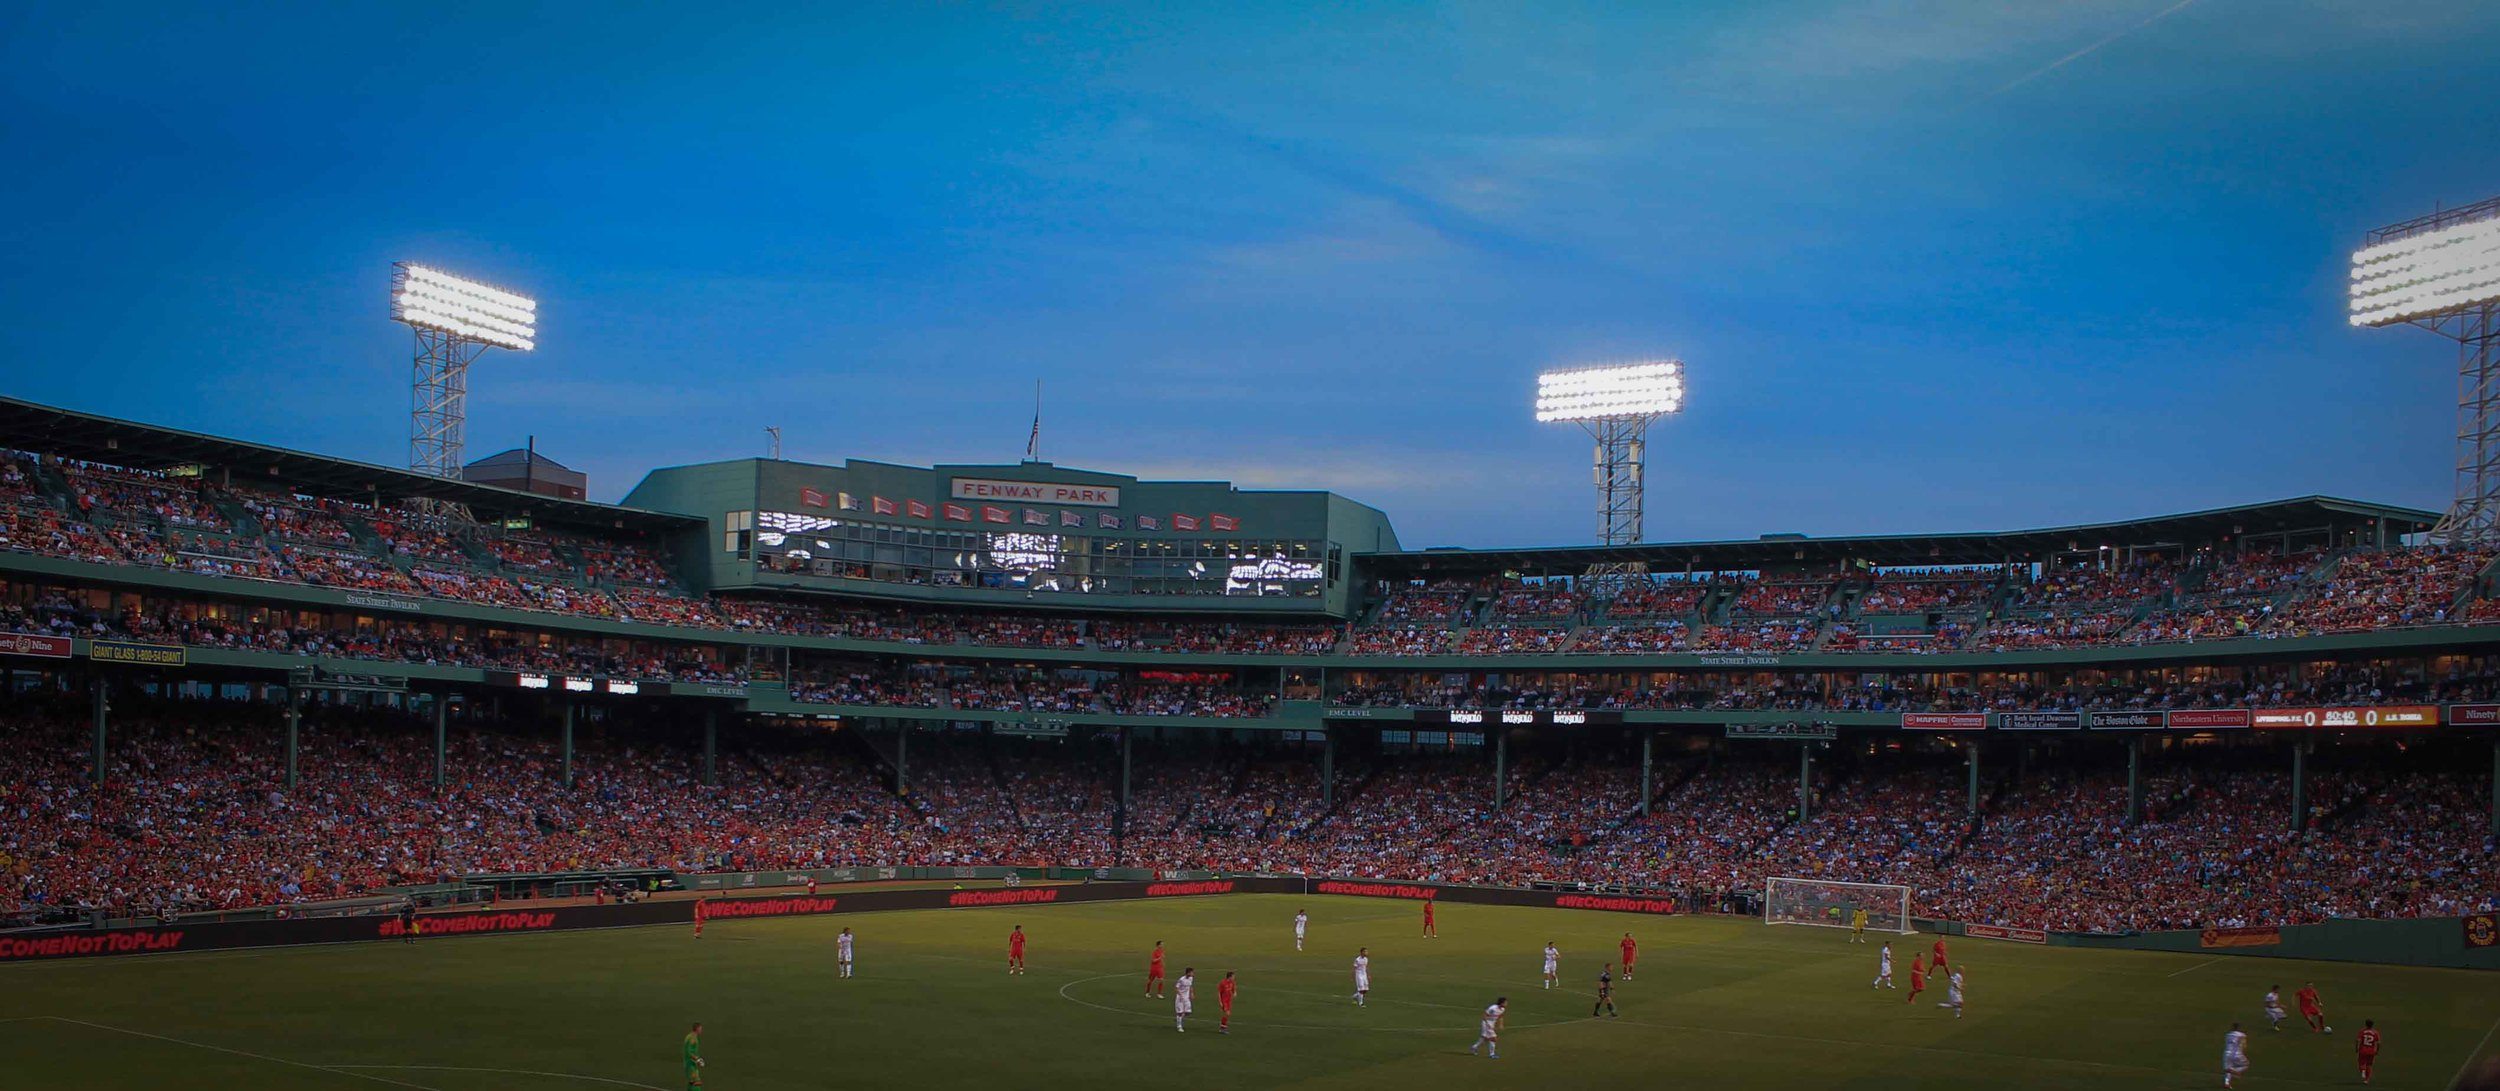 Football at Fenway. Awesome.